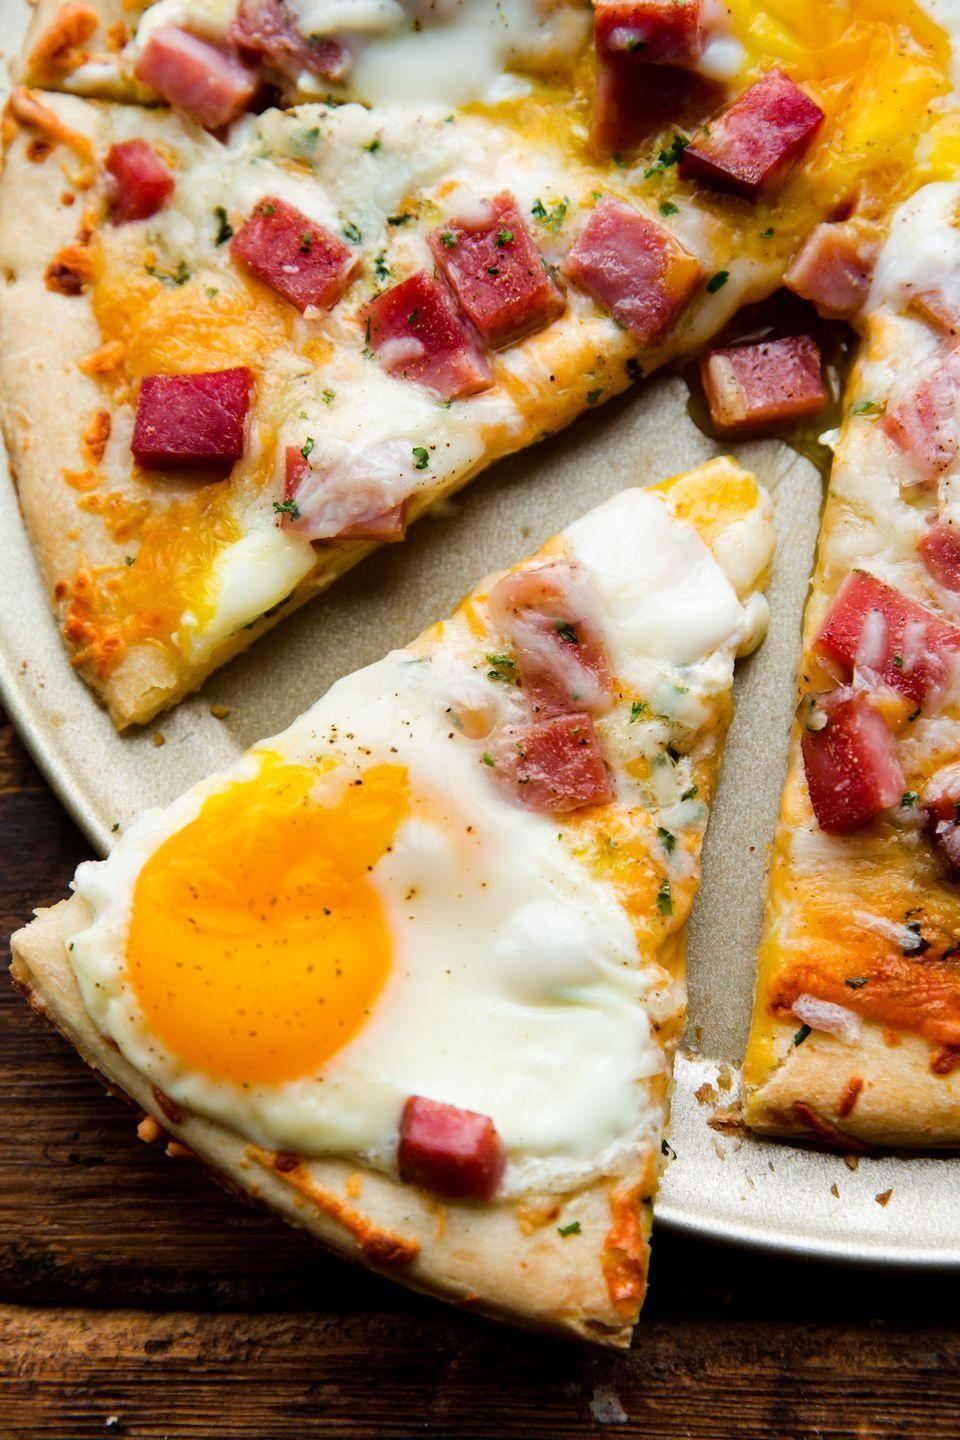 "<p>If you're short on time and crave breakfast for dinner (wait, isn't that every night?) this super simple pizza has your name all over it. You can really use any cheese you have, but don't forget those mouthwatering eggs on top! </p><p>Get the recipe from <a href=""https://www.delish.com/cooking/recipe-ideas/recipes/a52788/ham-egg-cheese-breakfast-pizza-recipe/"" rel=""nofollow noopener"" target=""_blank"" data-ylk=""slk:Delish"" class=""link rapid-noclick-resp"">Delish</a>.</p>"